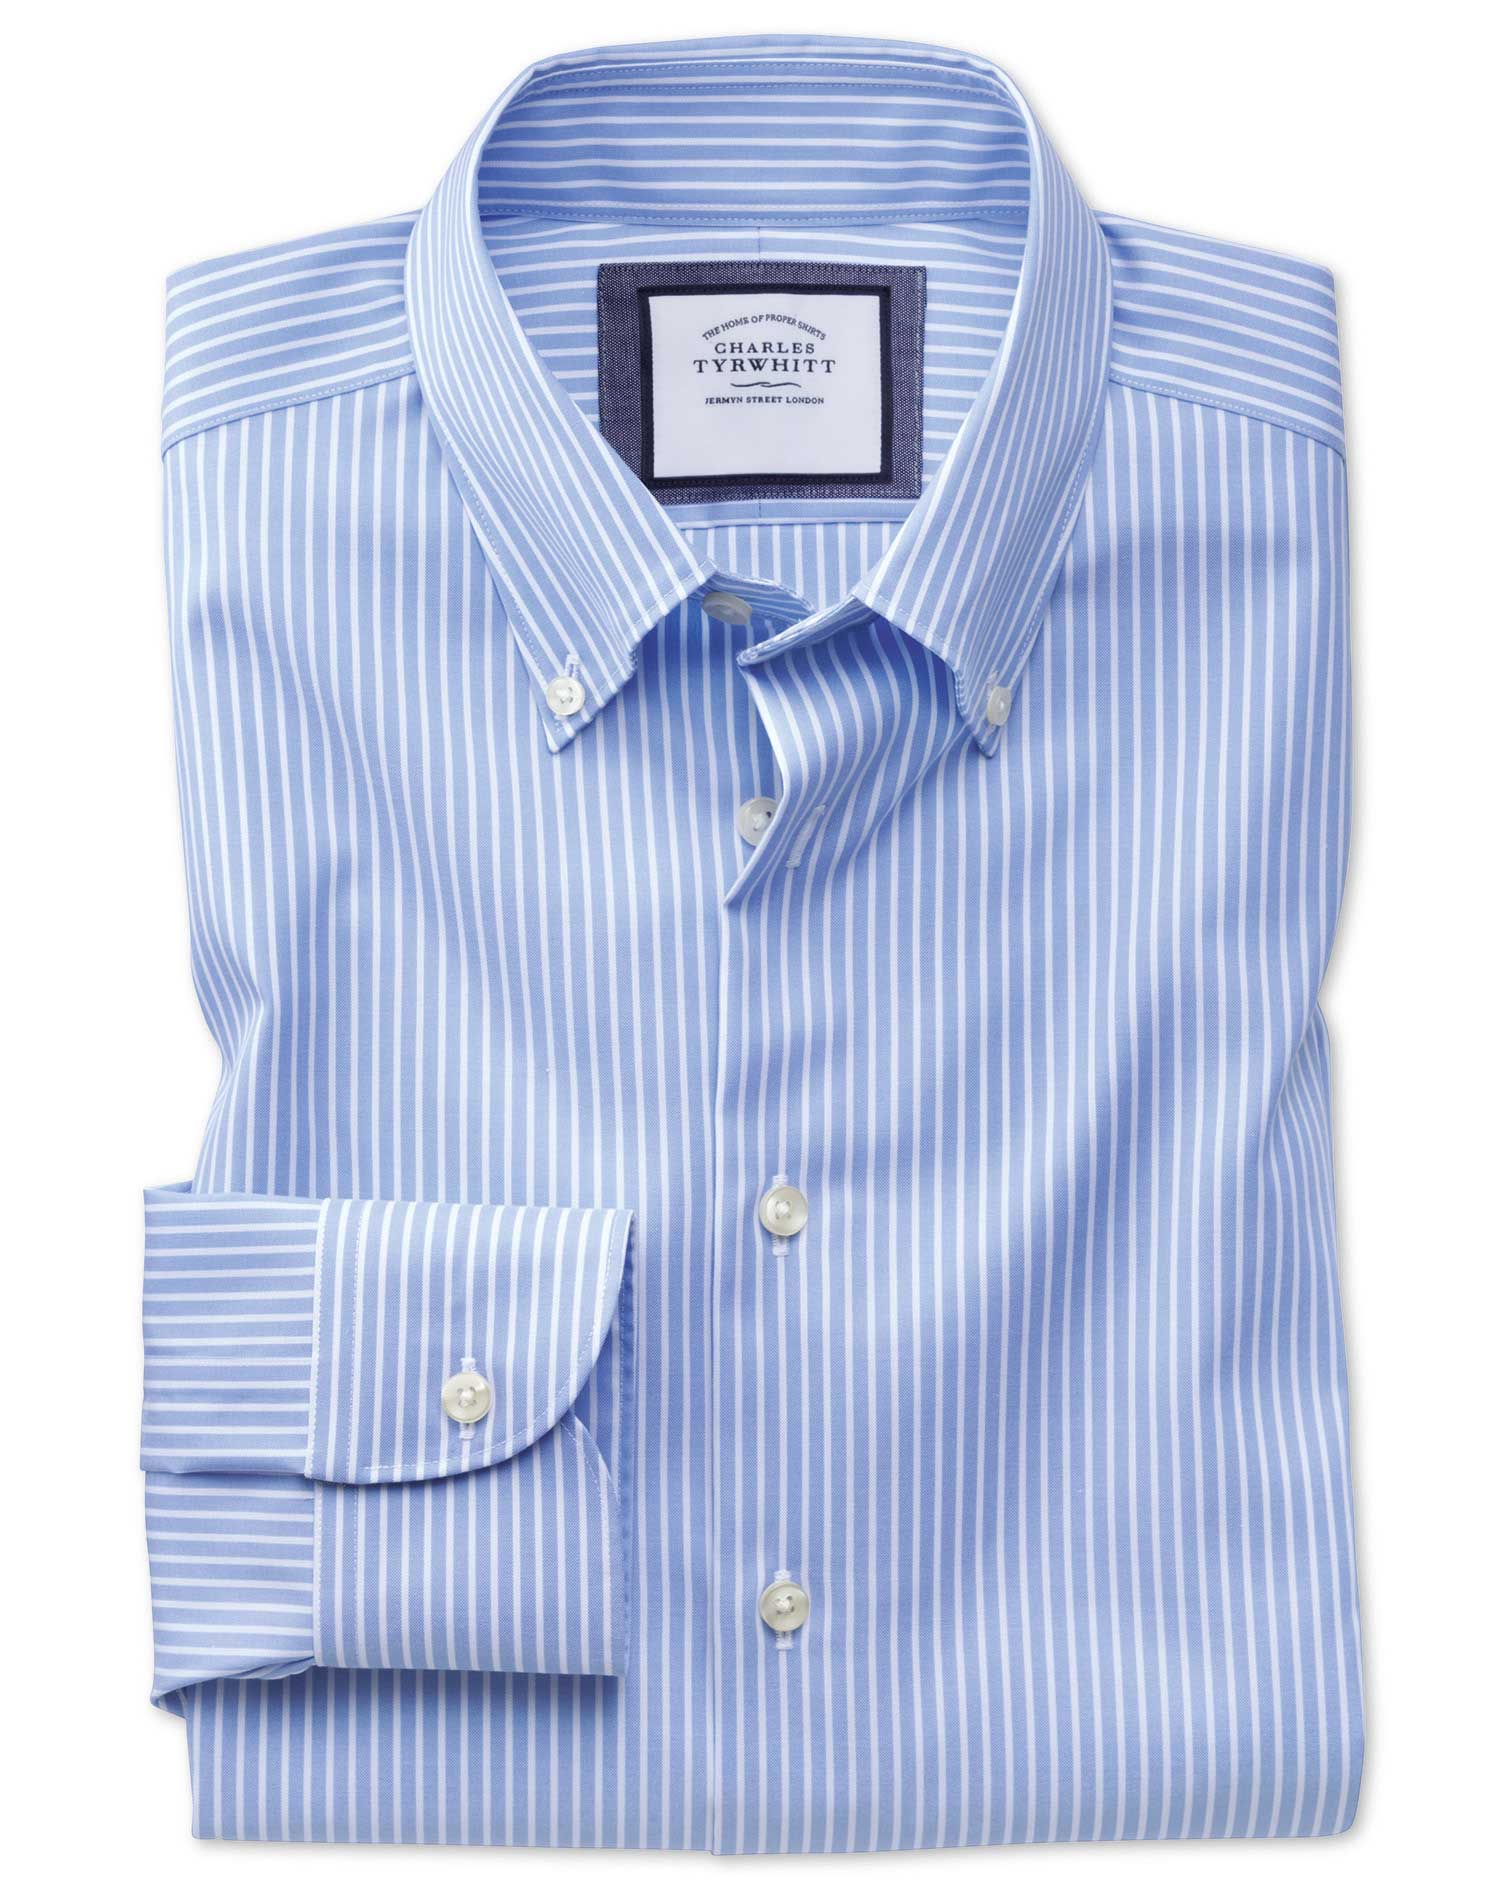 Classic Fit Business Casual Non Iron Button-Down Stripe Sky and White Cotton Formal Shirt Single Cuf